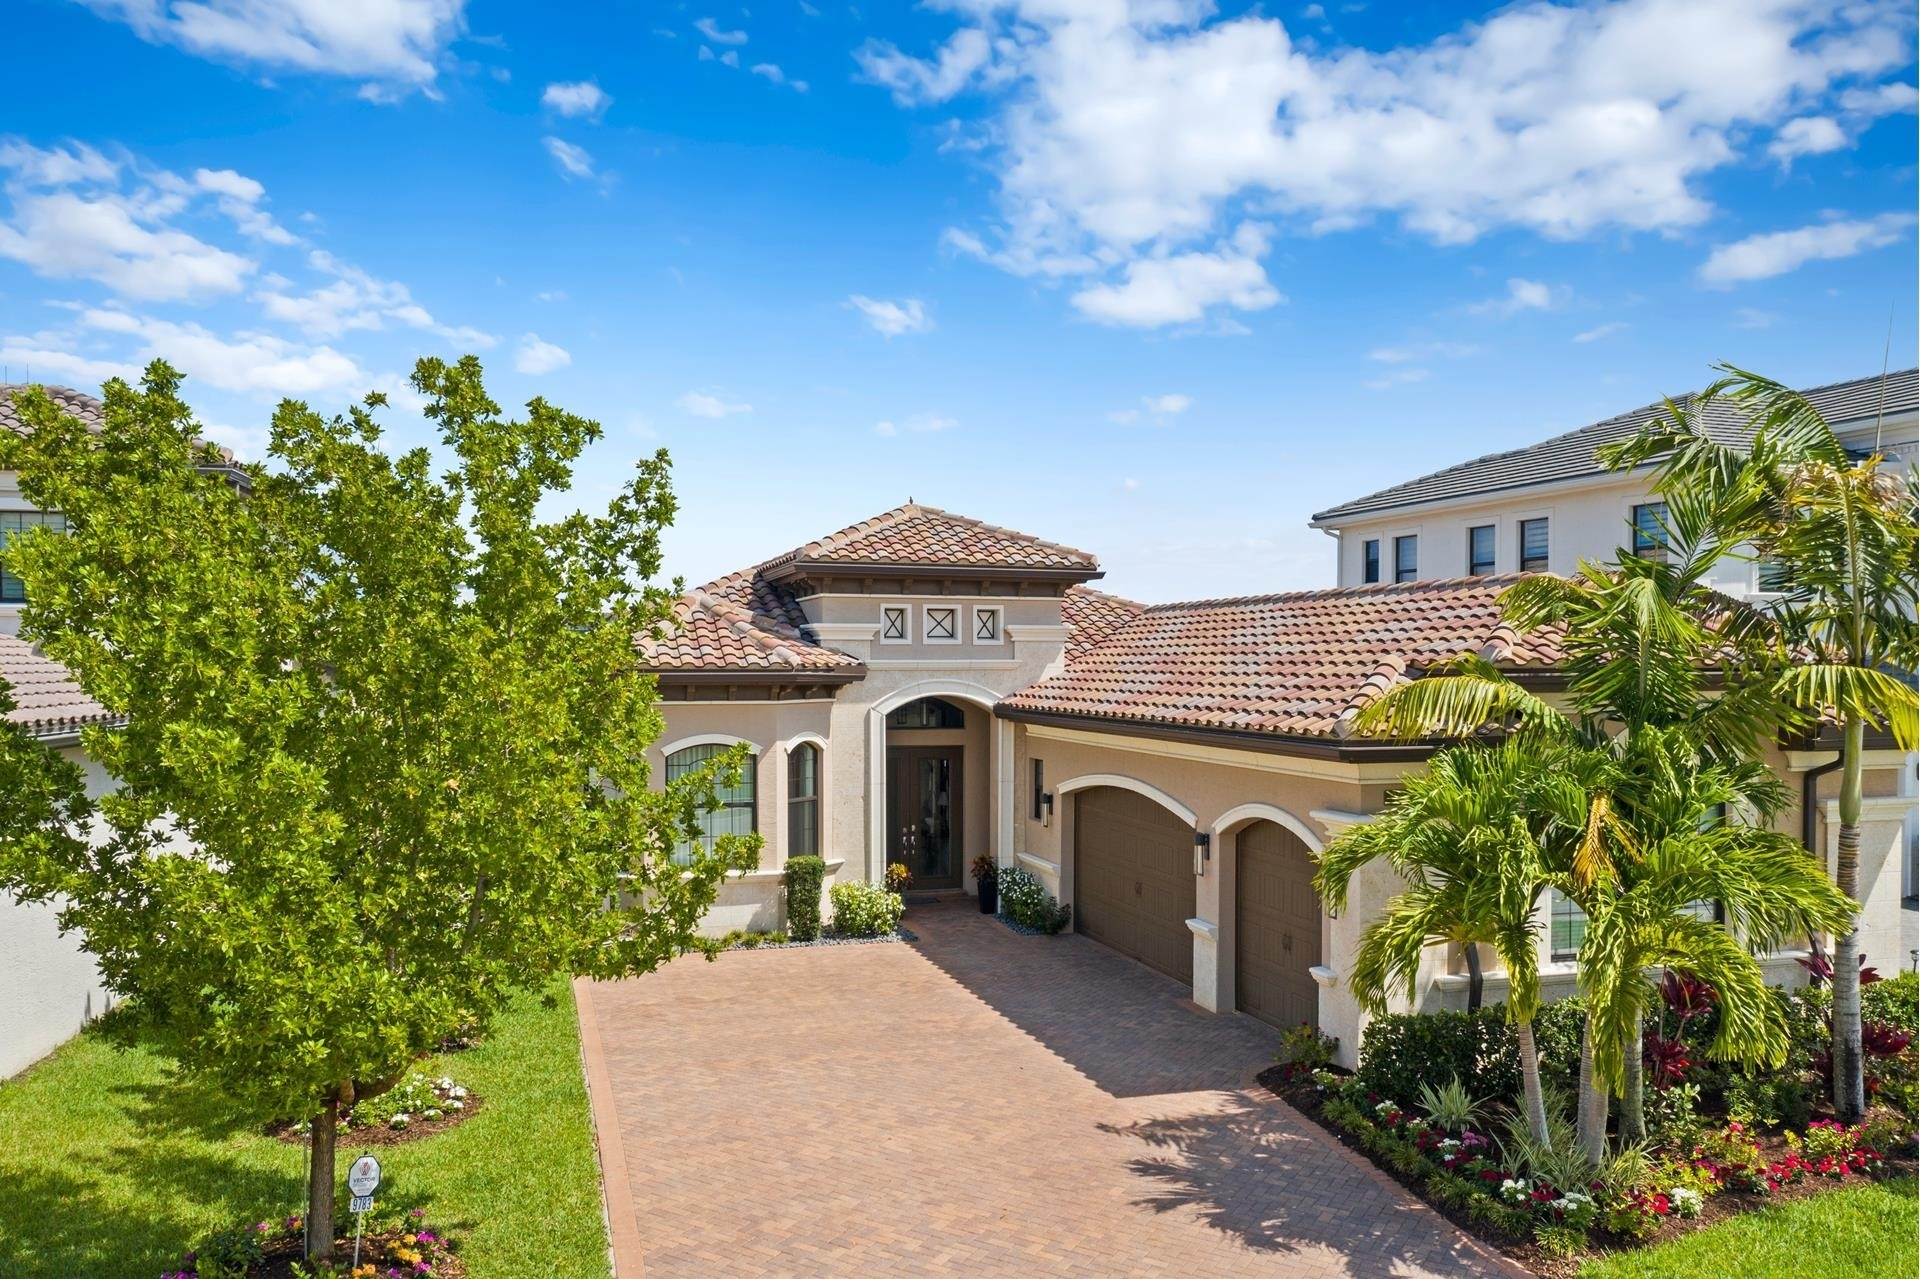 2. Single Family Homes for Sale at Delray Beach, FL 33446